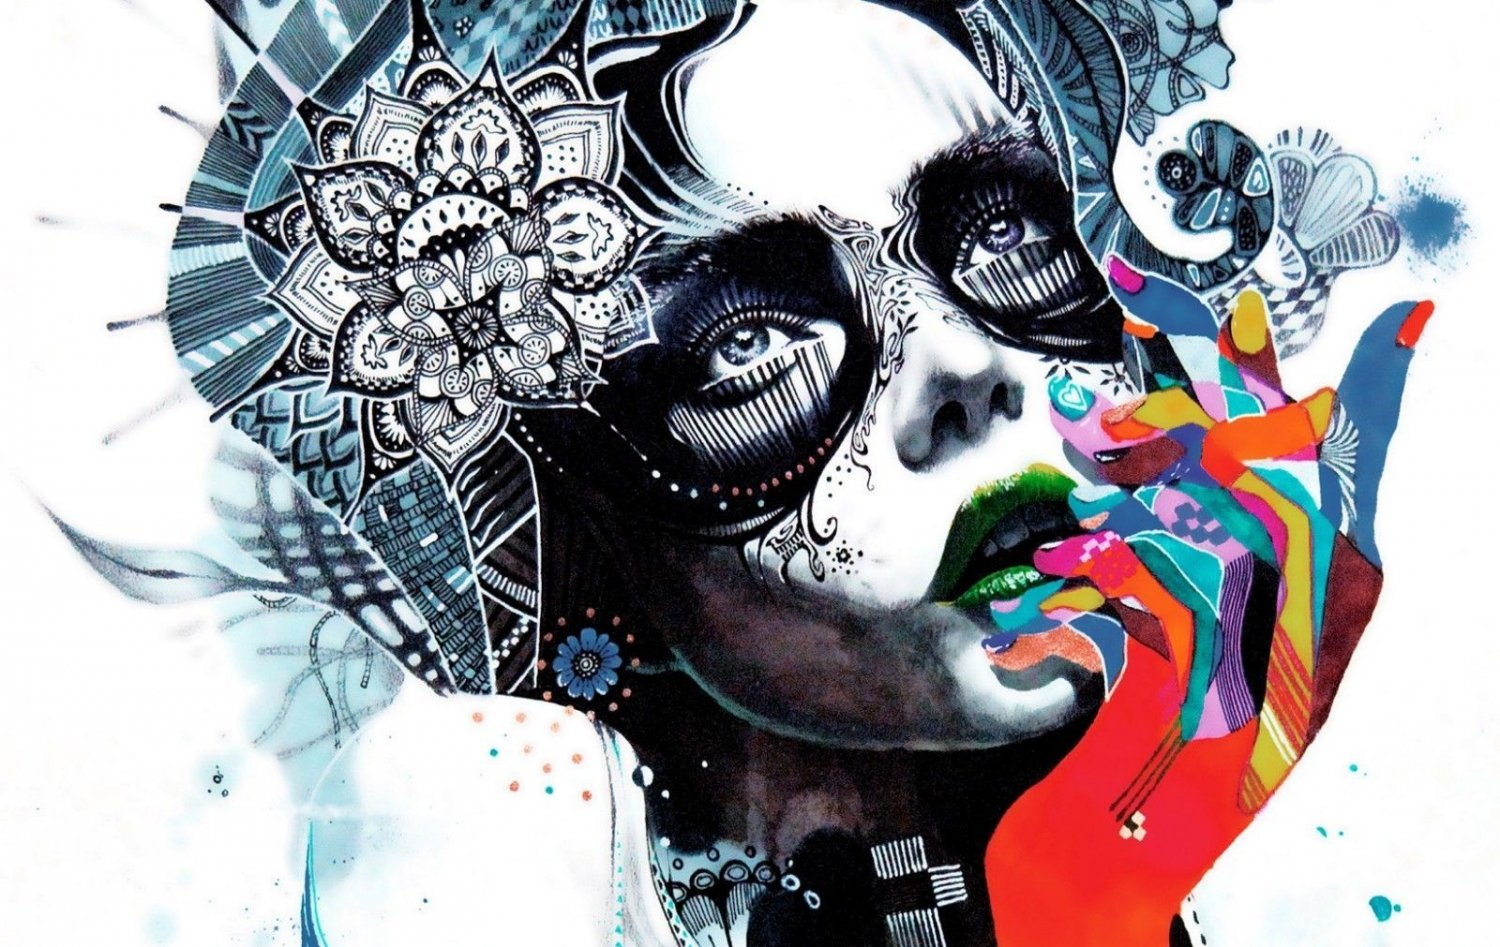 Psychedelic Trippy Art Wall Print POSTER Decor 32x24